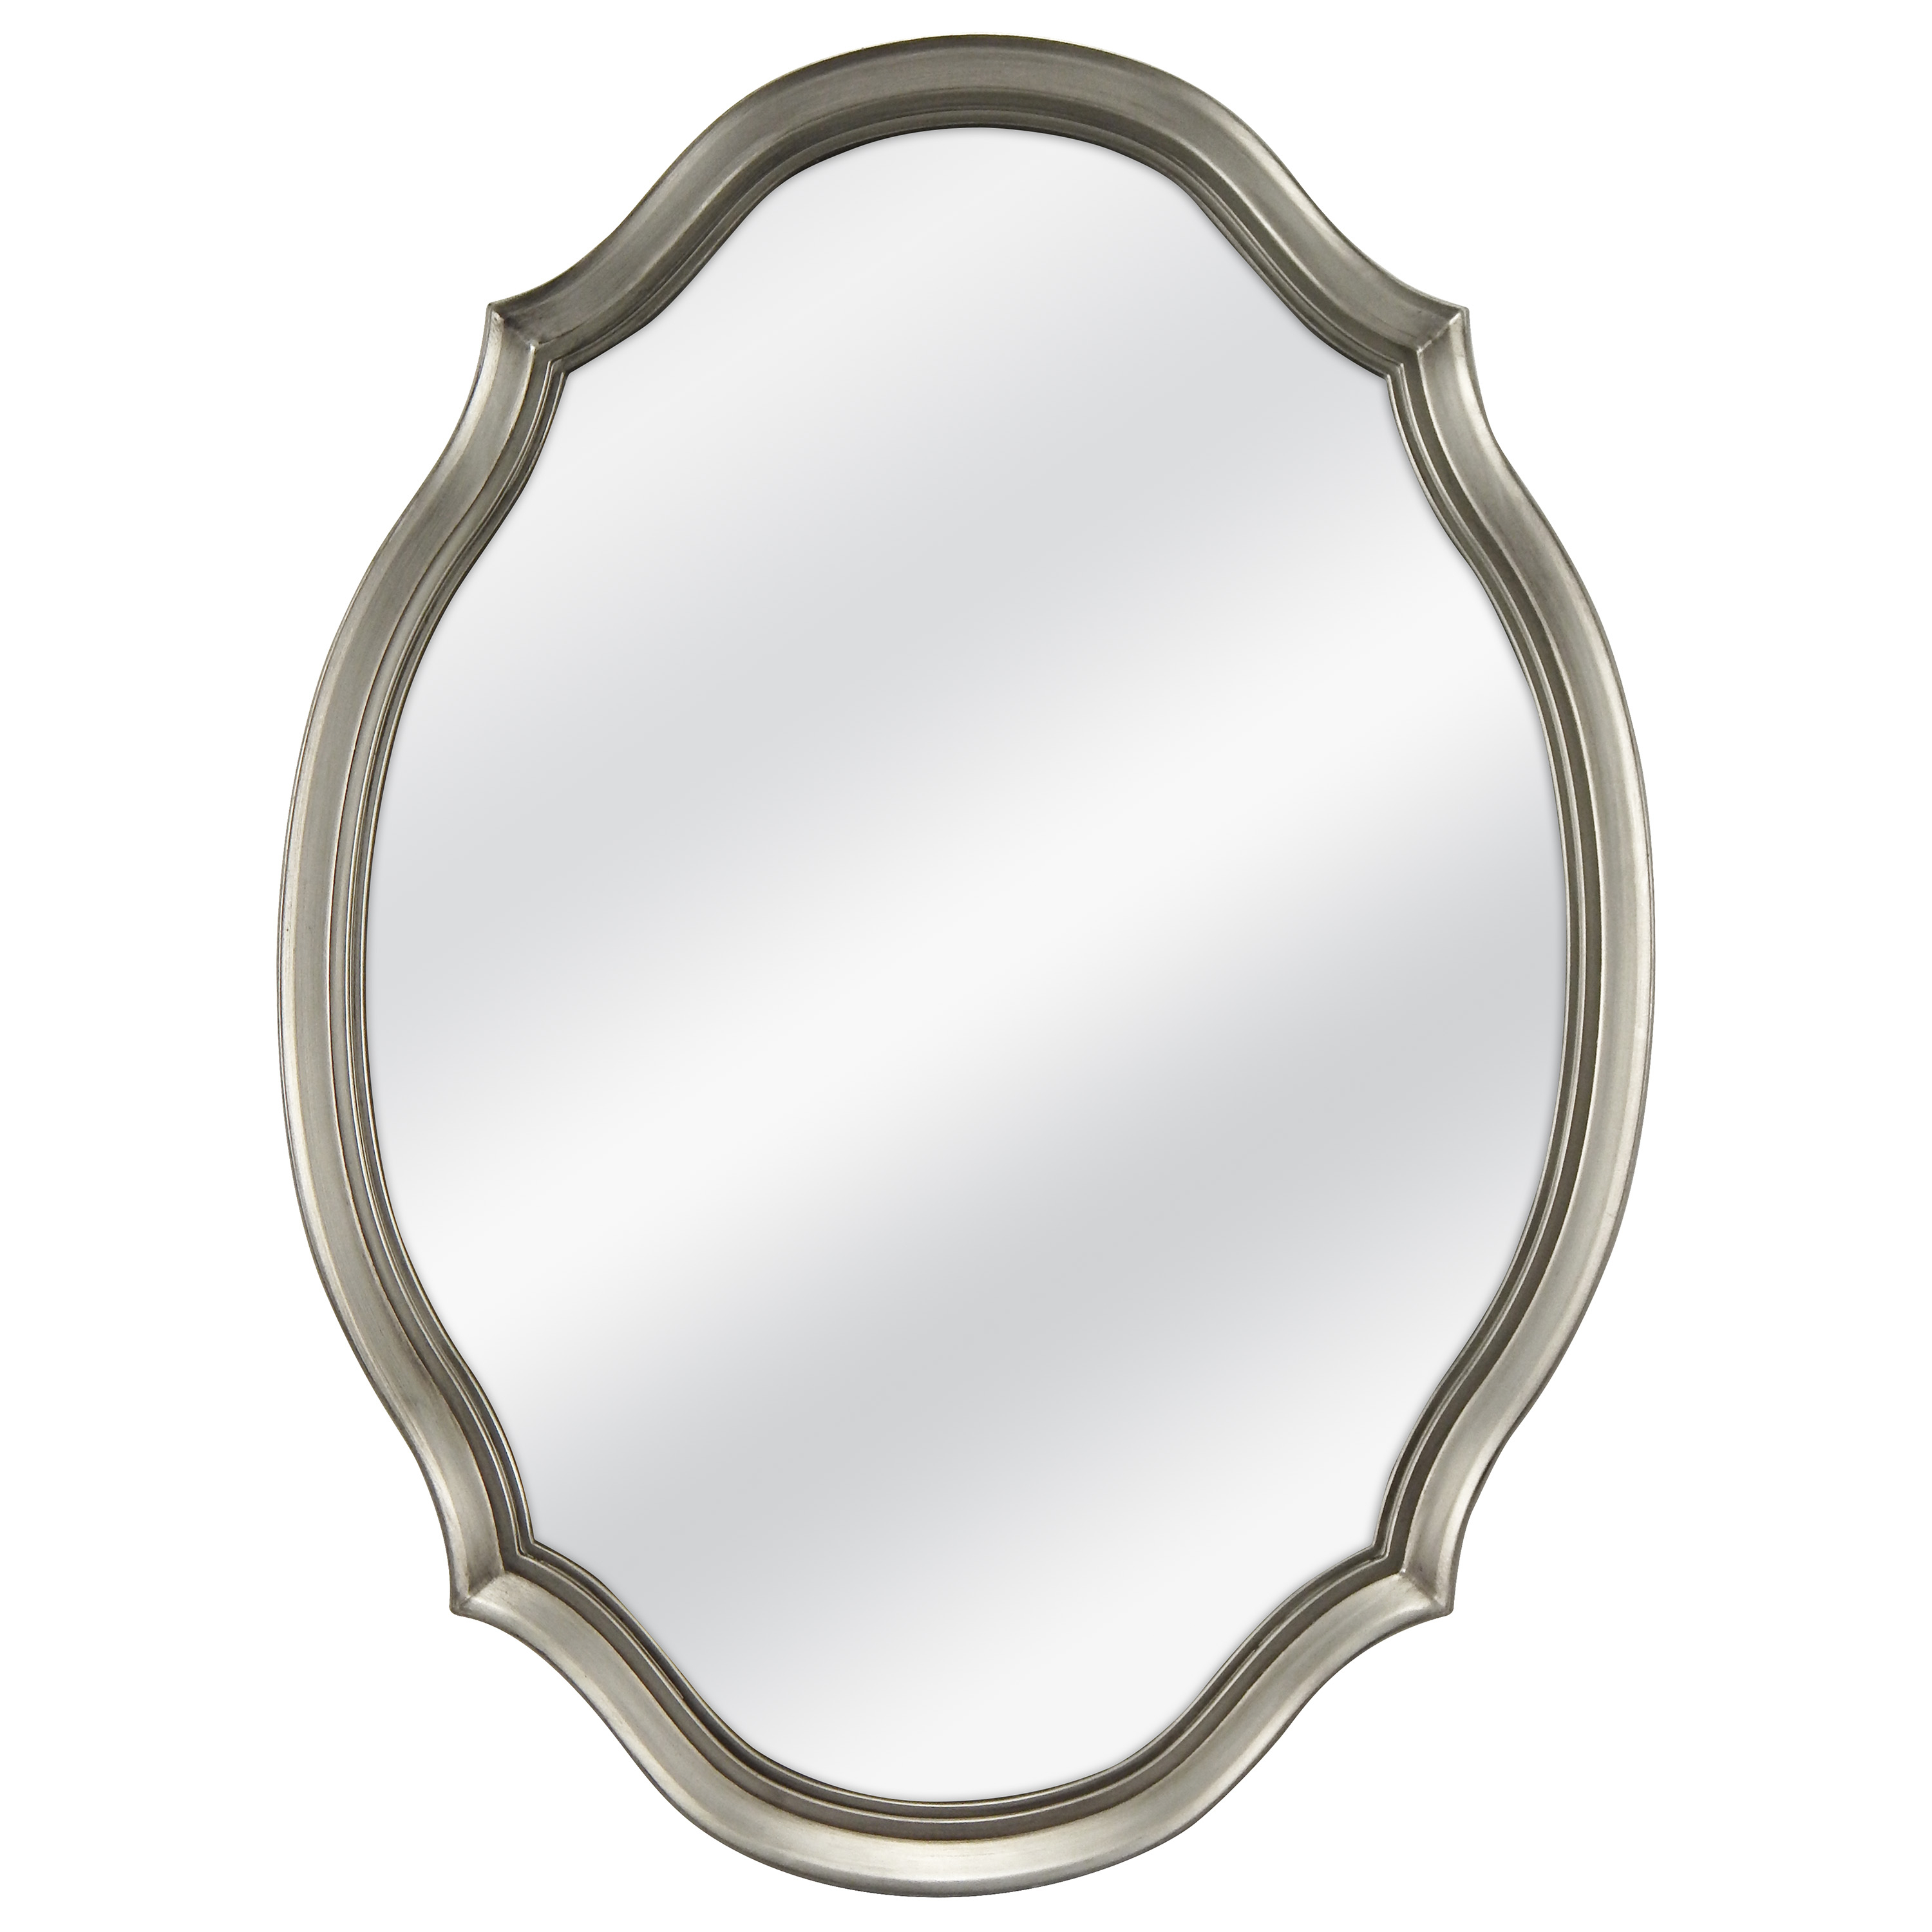 Famous Oval Shaped Wall Mirrors Within Mainstays 19X26 Pewter Shaped Oval Wall Mirror (View 5 of 20)